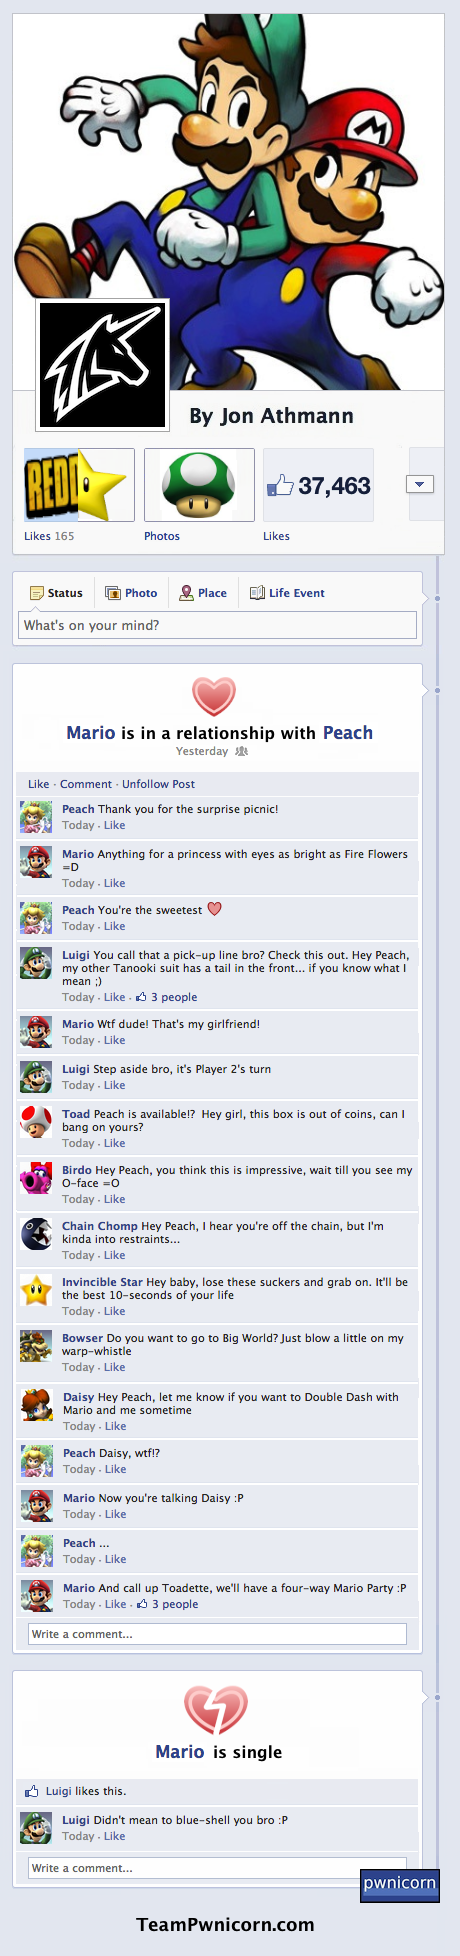 Mario and Luigi fight over peach on facebook